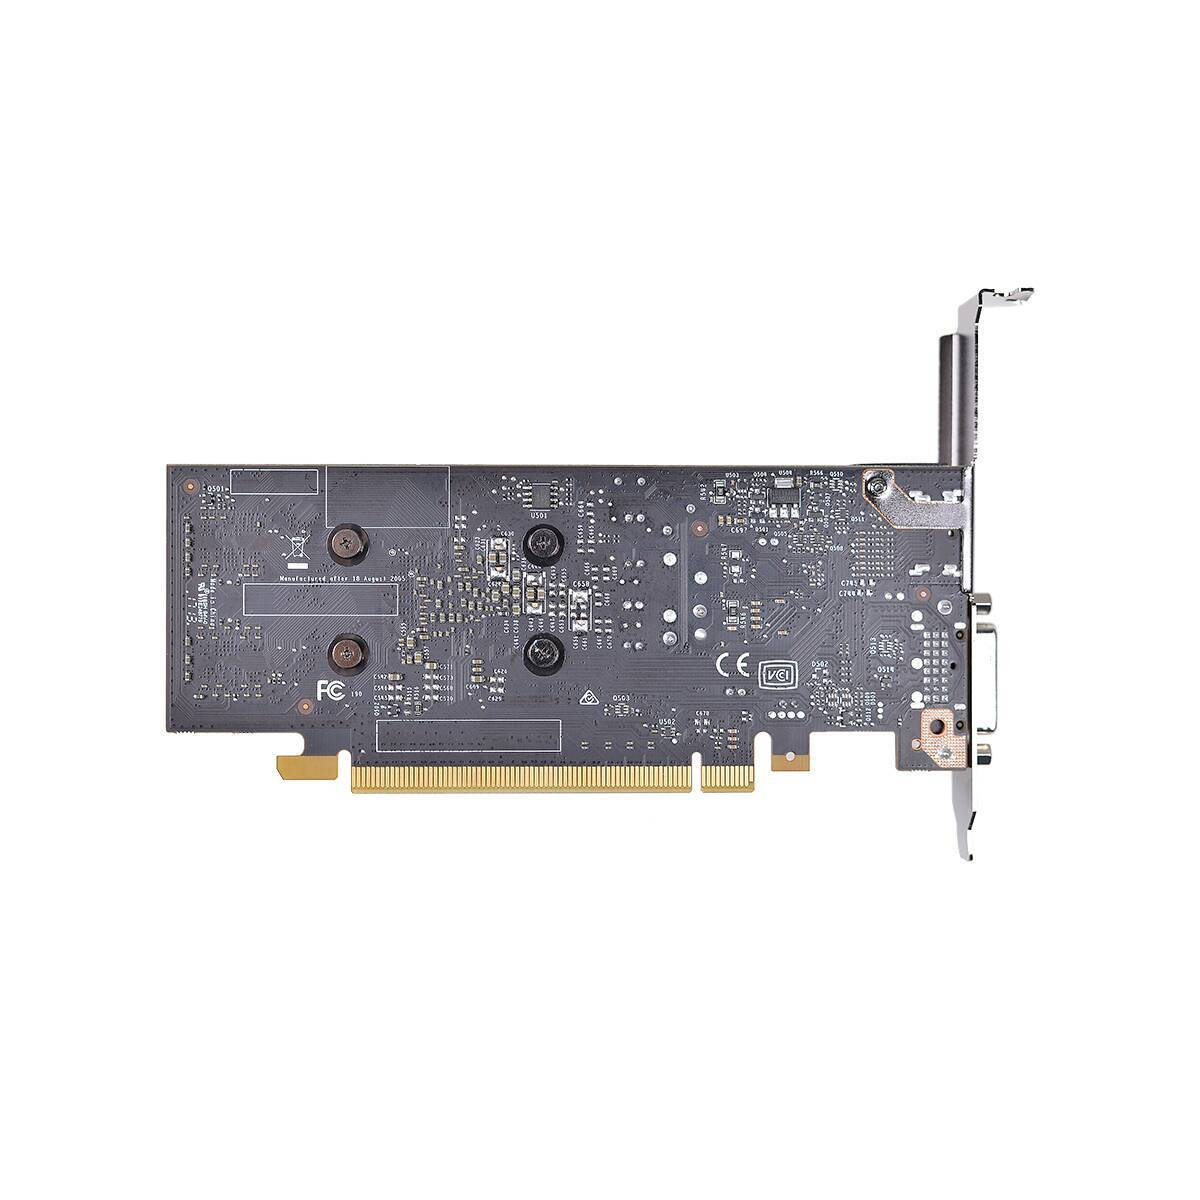 EVGA GeForce GT1030 2GB GDDR5 PCI-E 3.0 Video card , DVI+HDMI , Low Profile Support with Bracket image